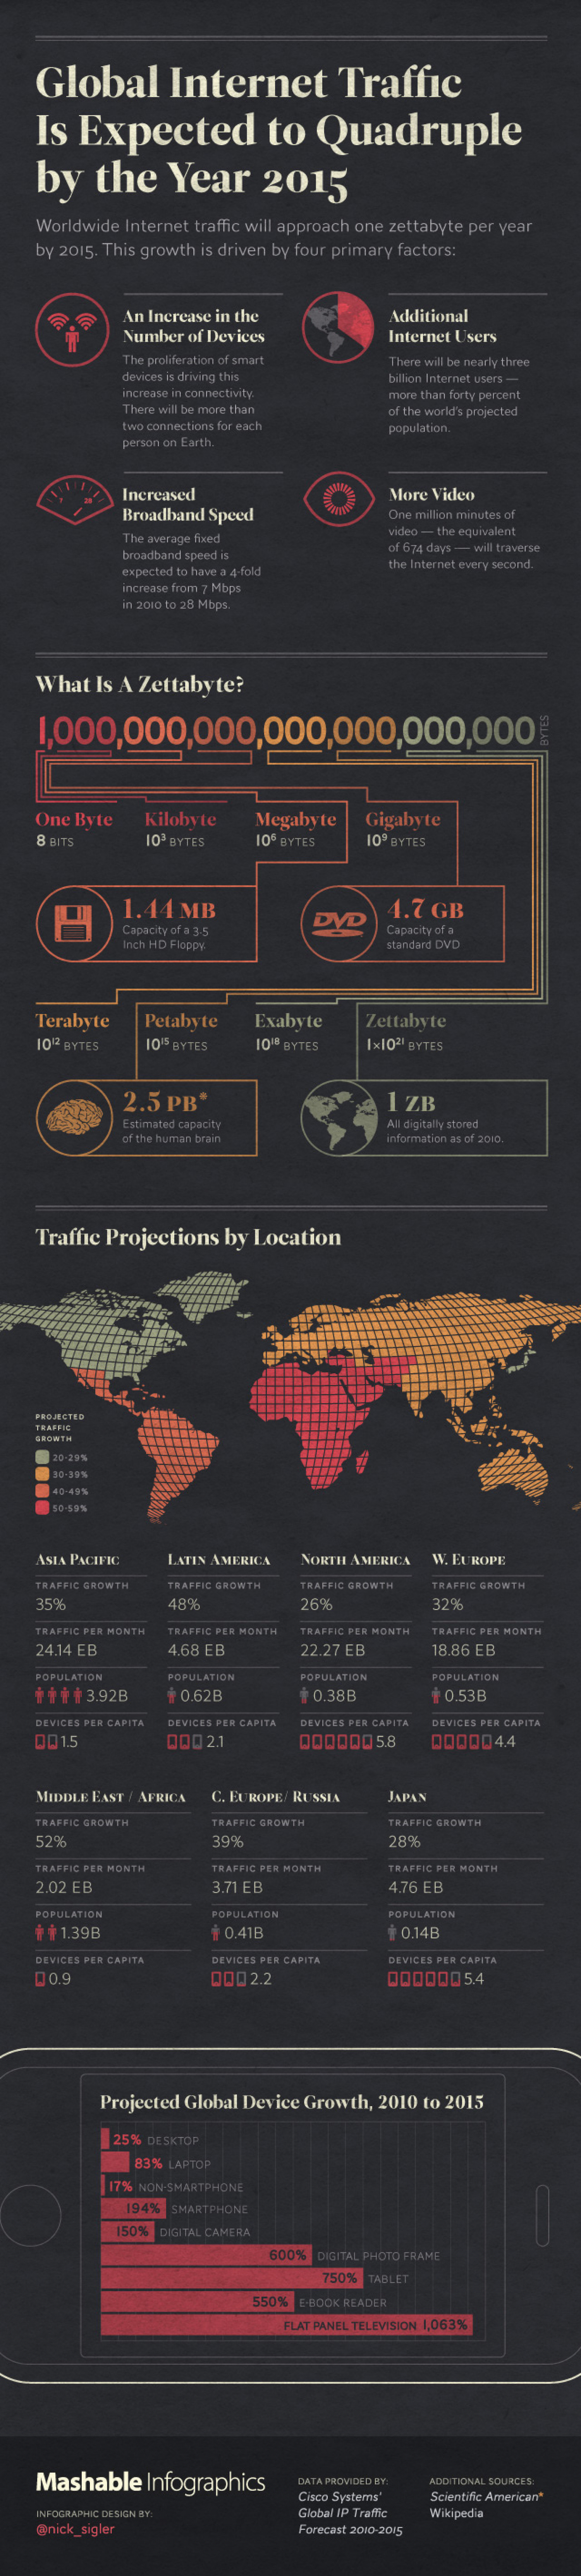 Global Internet Traffic to Reach 1 ZettaByte by 2015 [Infographics ... Infographic